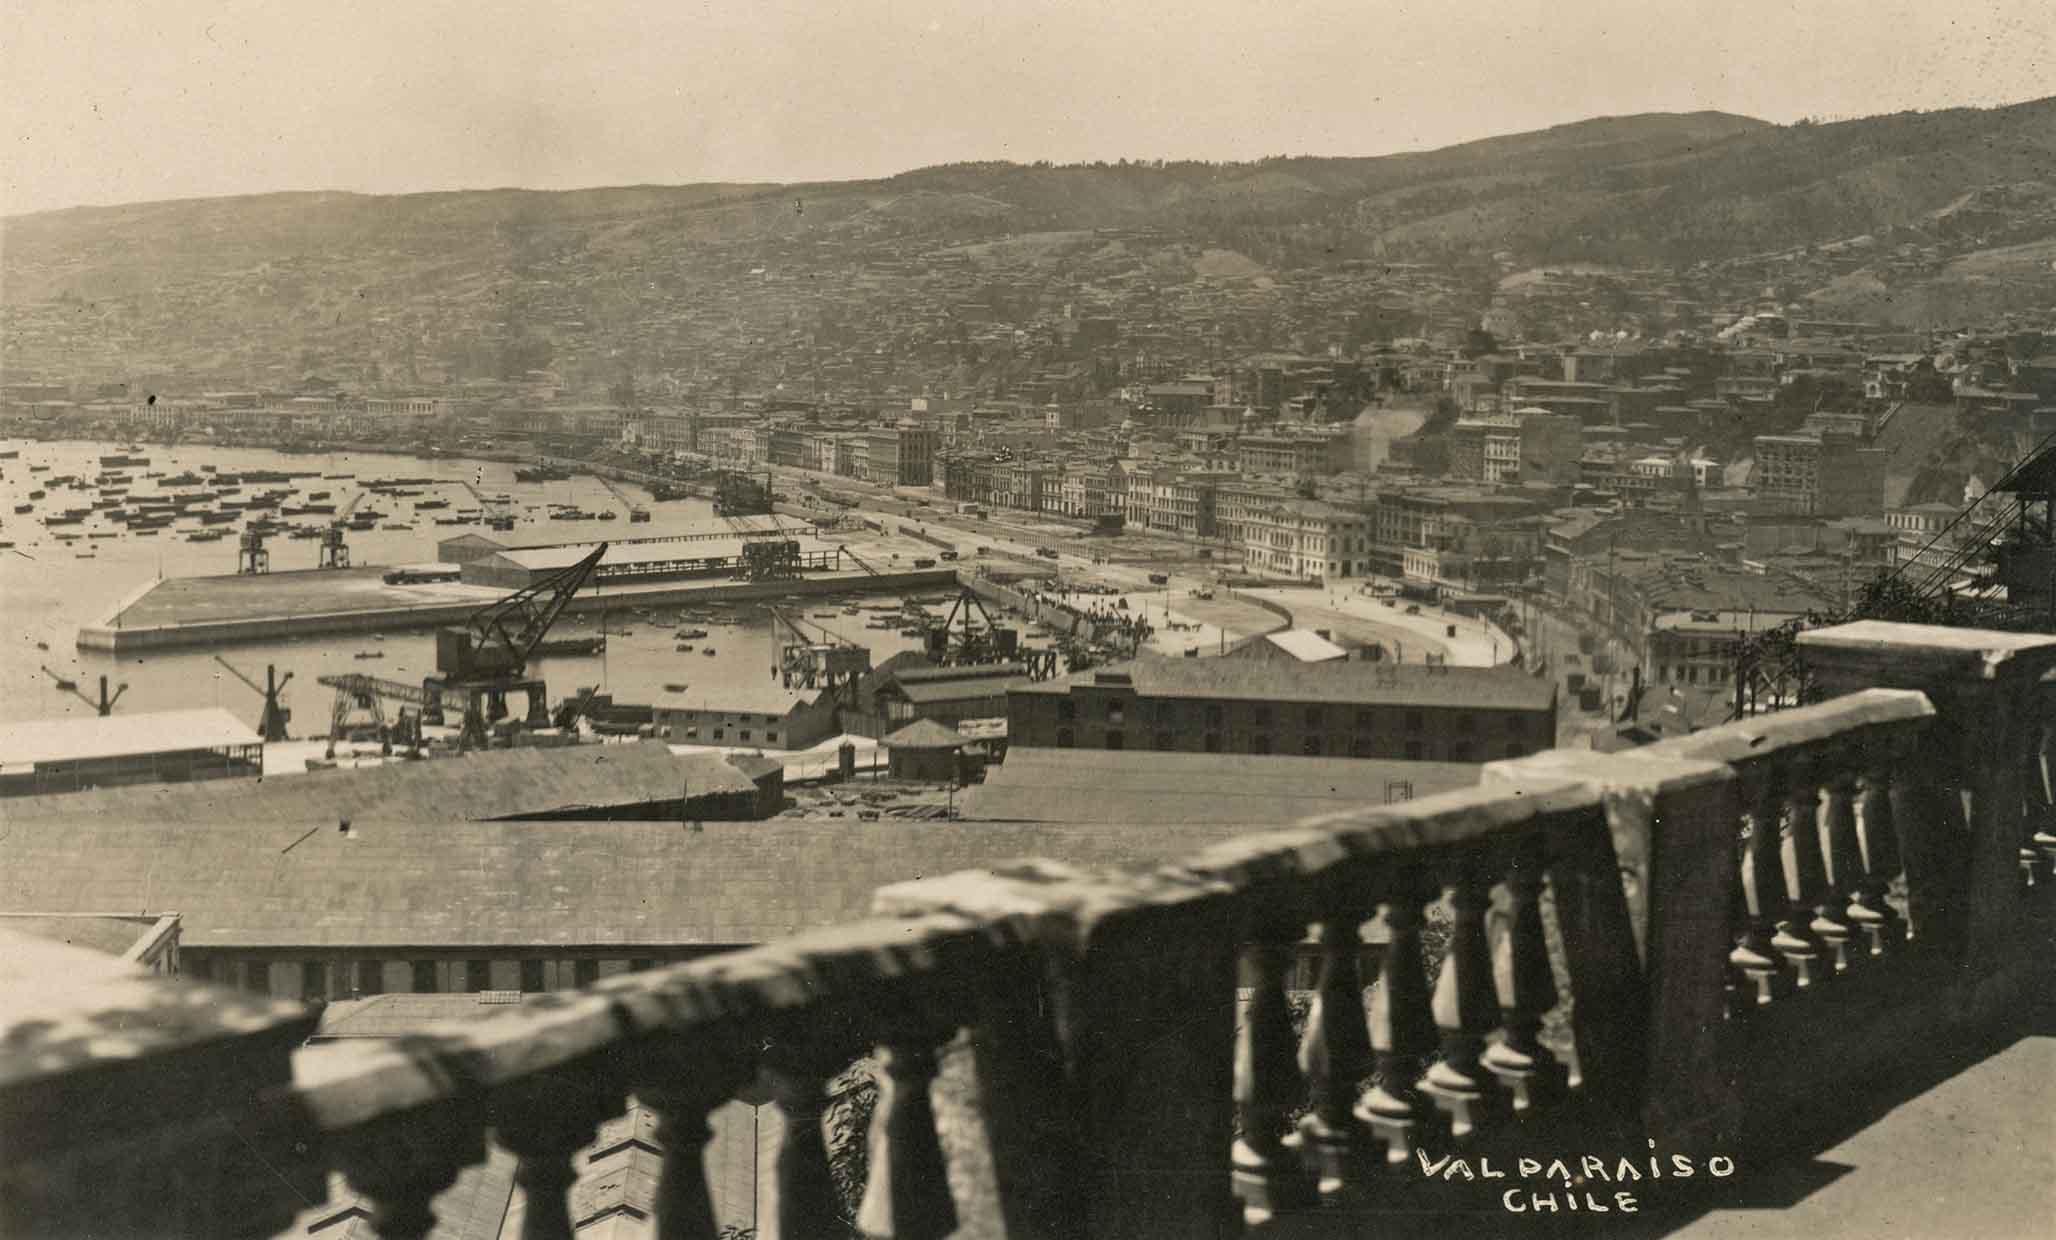 Enterreno - Fotos históricas de chile - fotos antiguas de Chile - Vista de Valparaíso en 1920